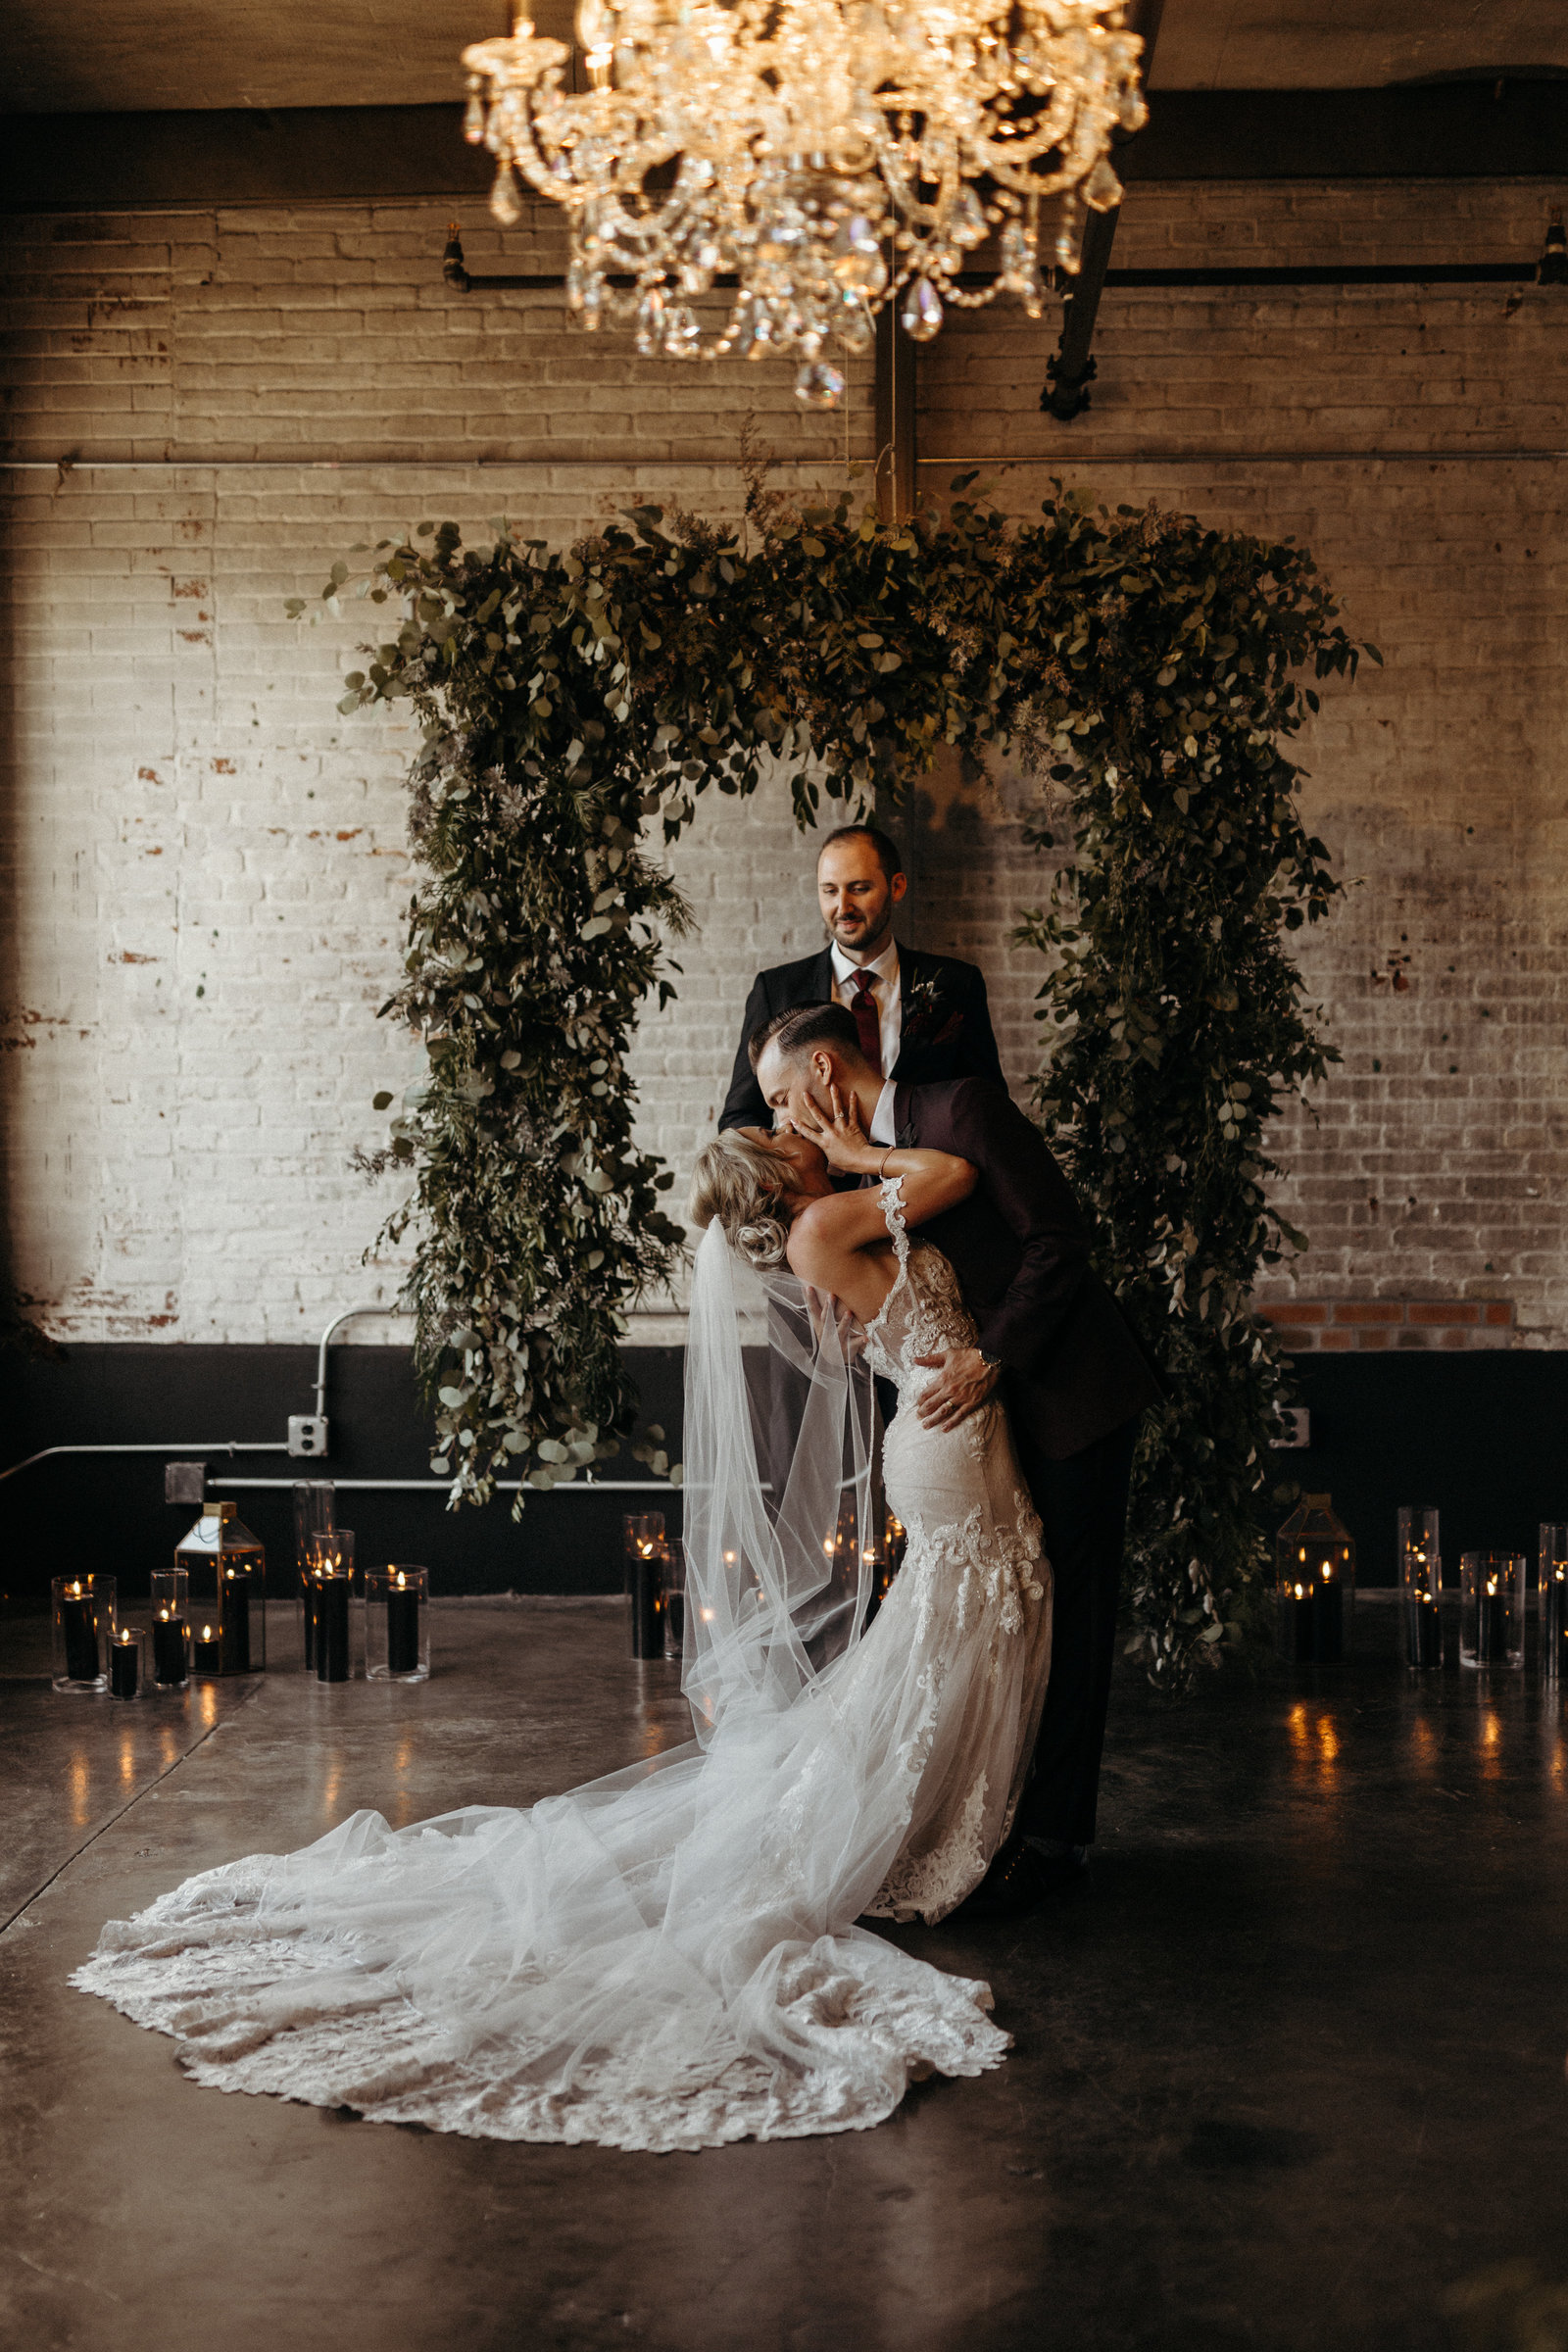 Moody-Gothic-Til-Death-Industrial-Elopement-Appalachians_Smokeys-Wedding-Photographer-Adventure-2